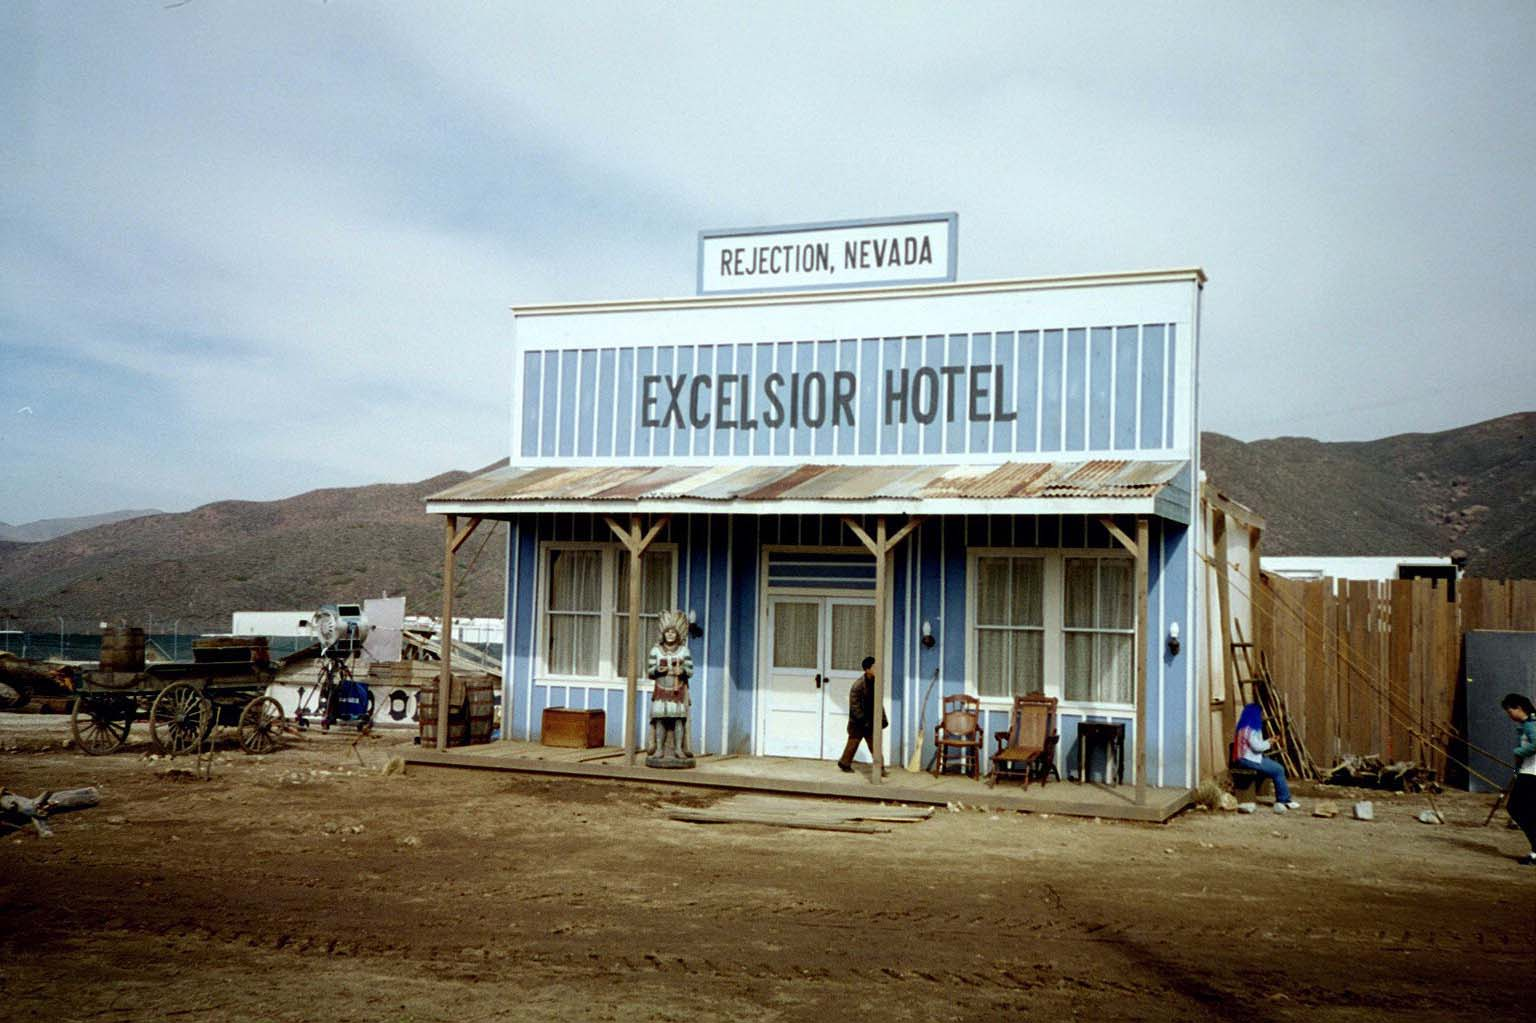 Excelsior Hotel, Rejection Nevada